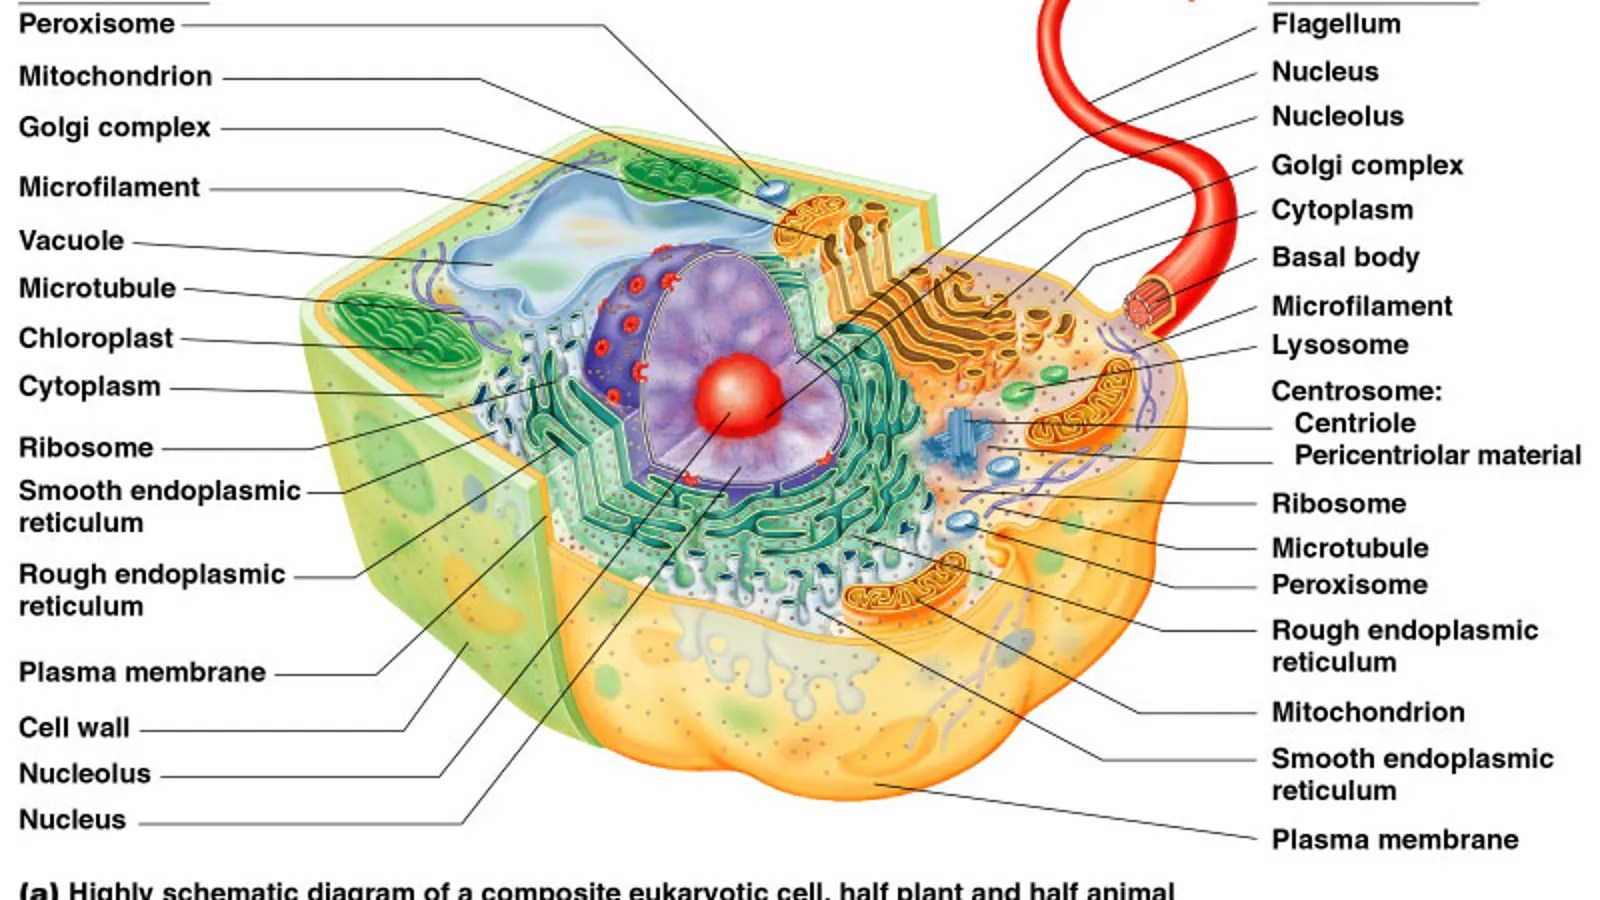 hight resolution of typical eukaryotic cell diagram